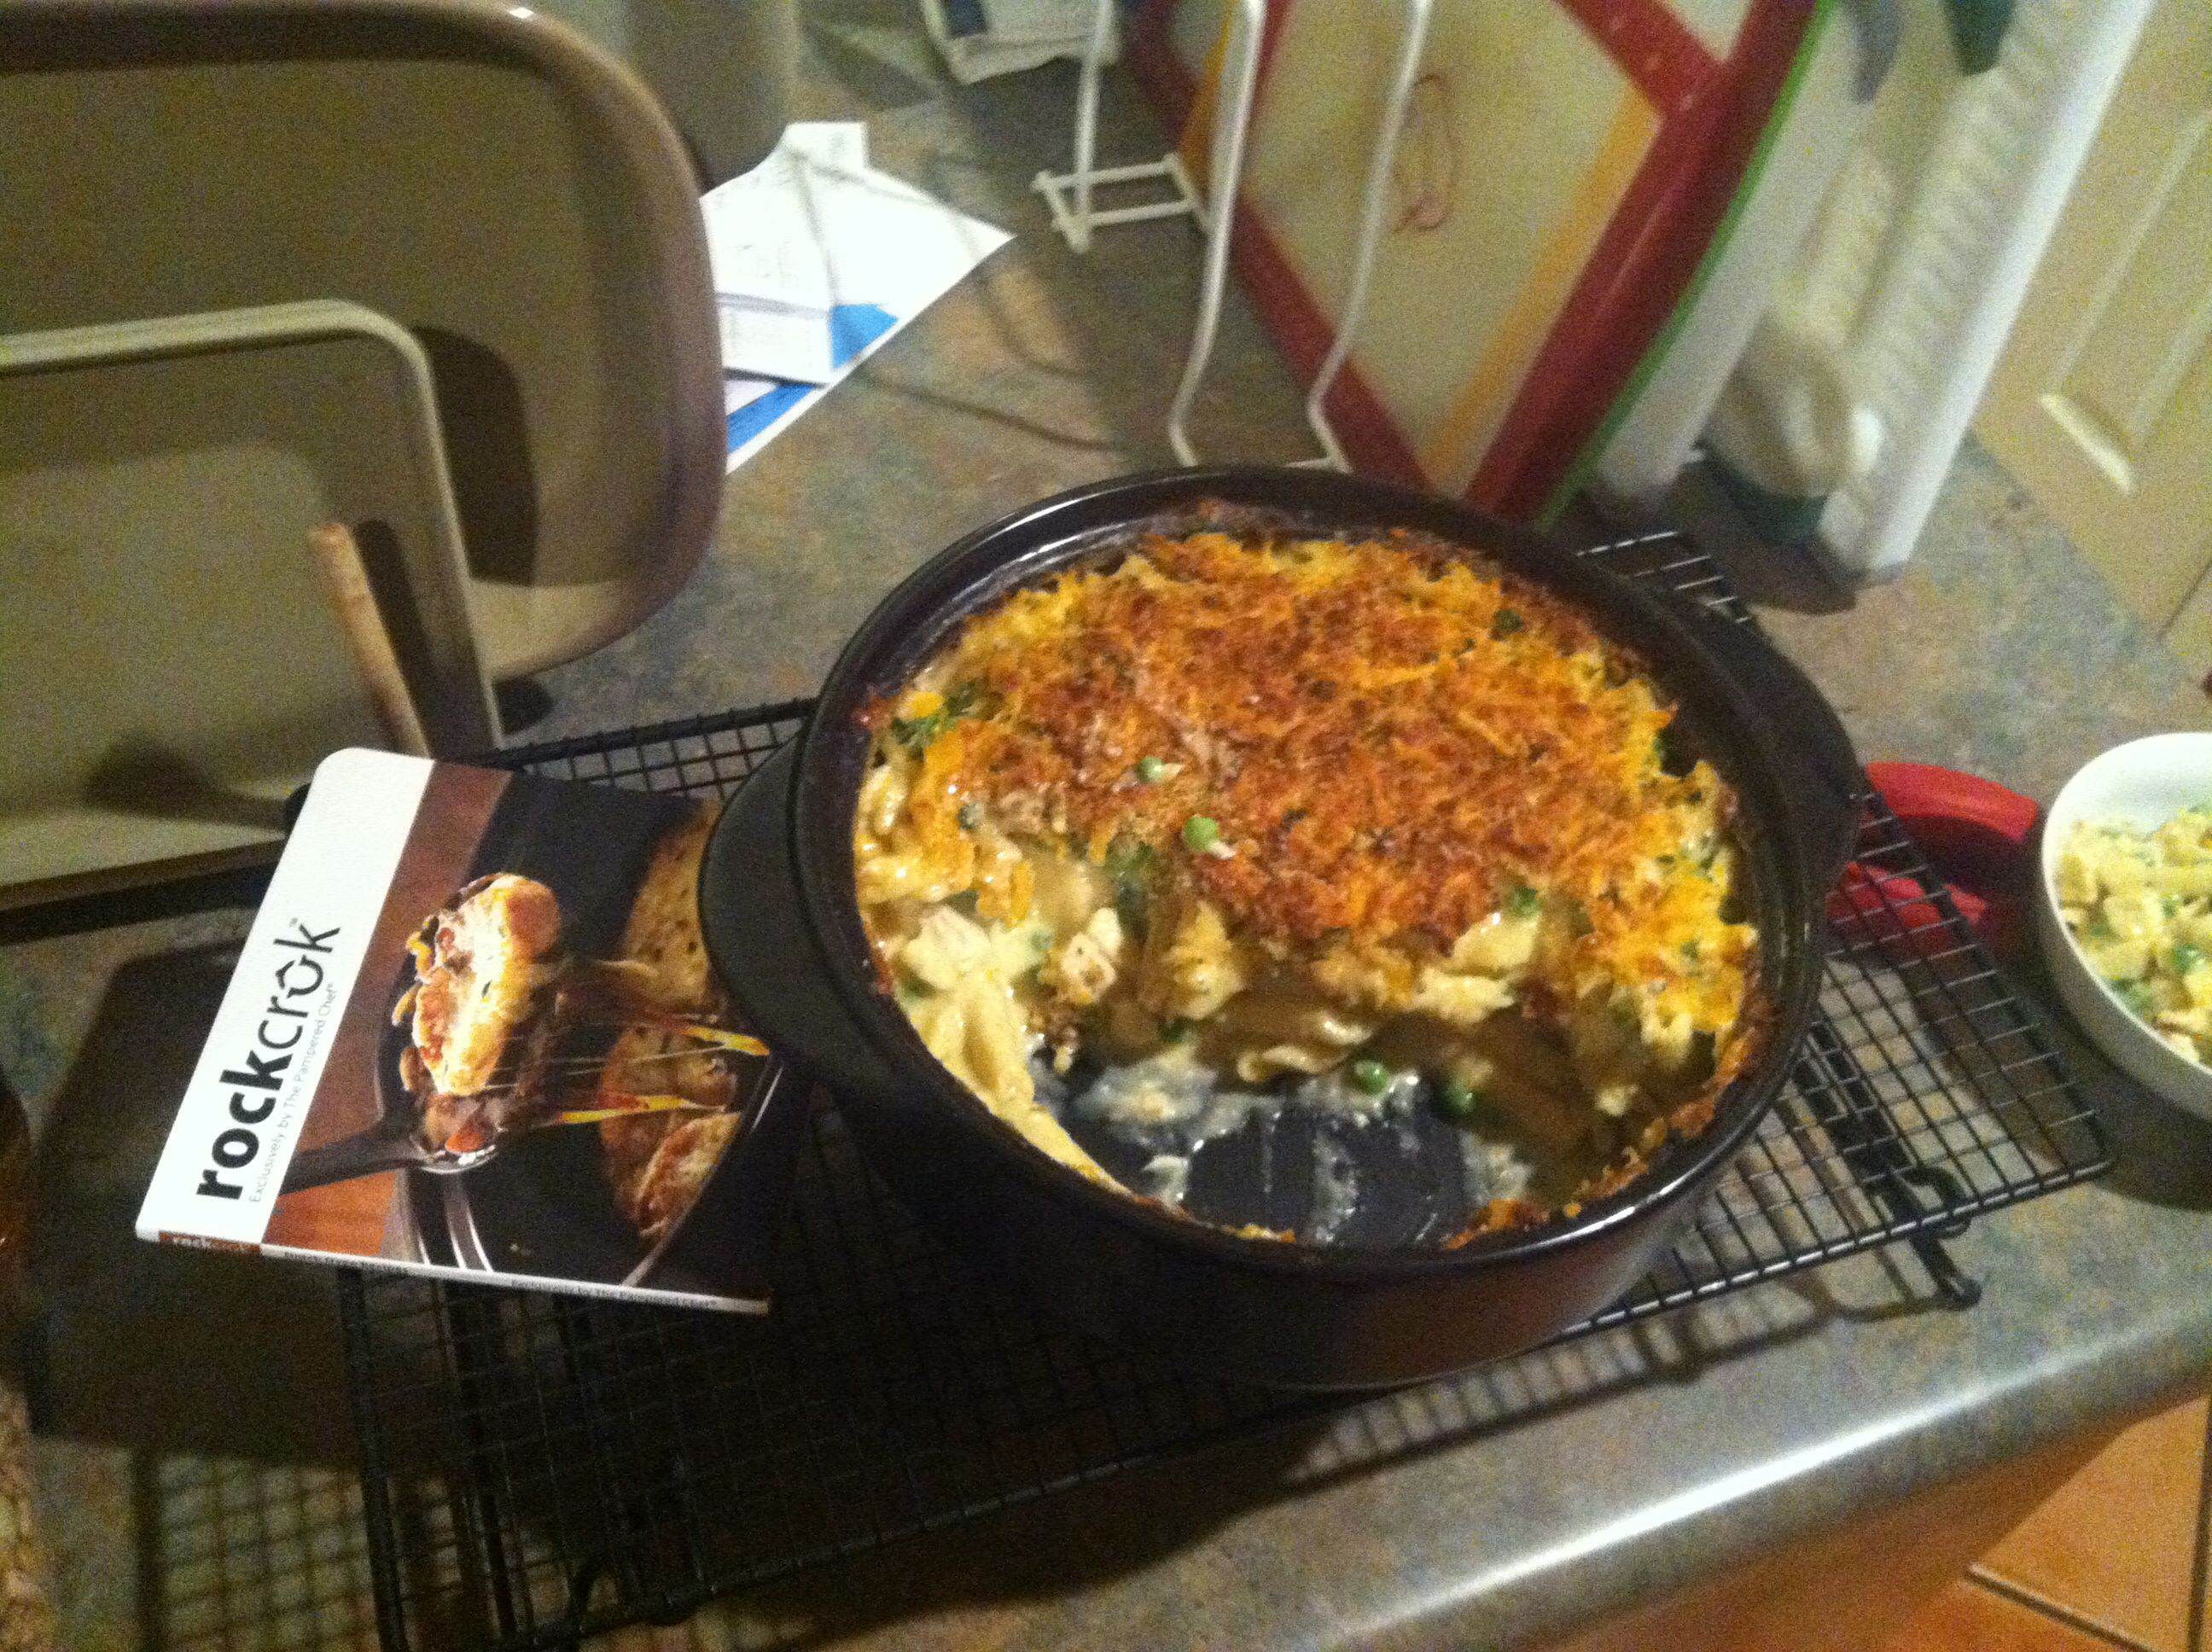 Pampered Chef Cake Recipe In Rice Cooker: Cheesy Chicken Penne Made In The Pampered Chef's New